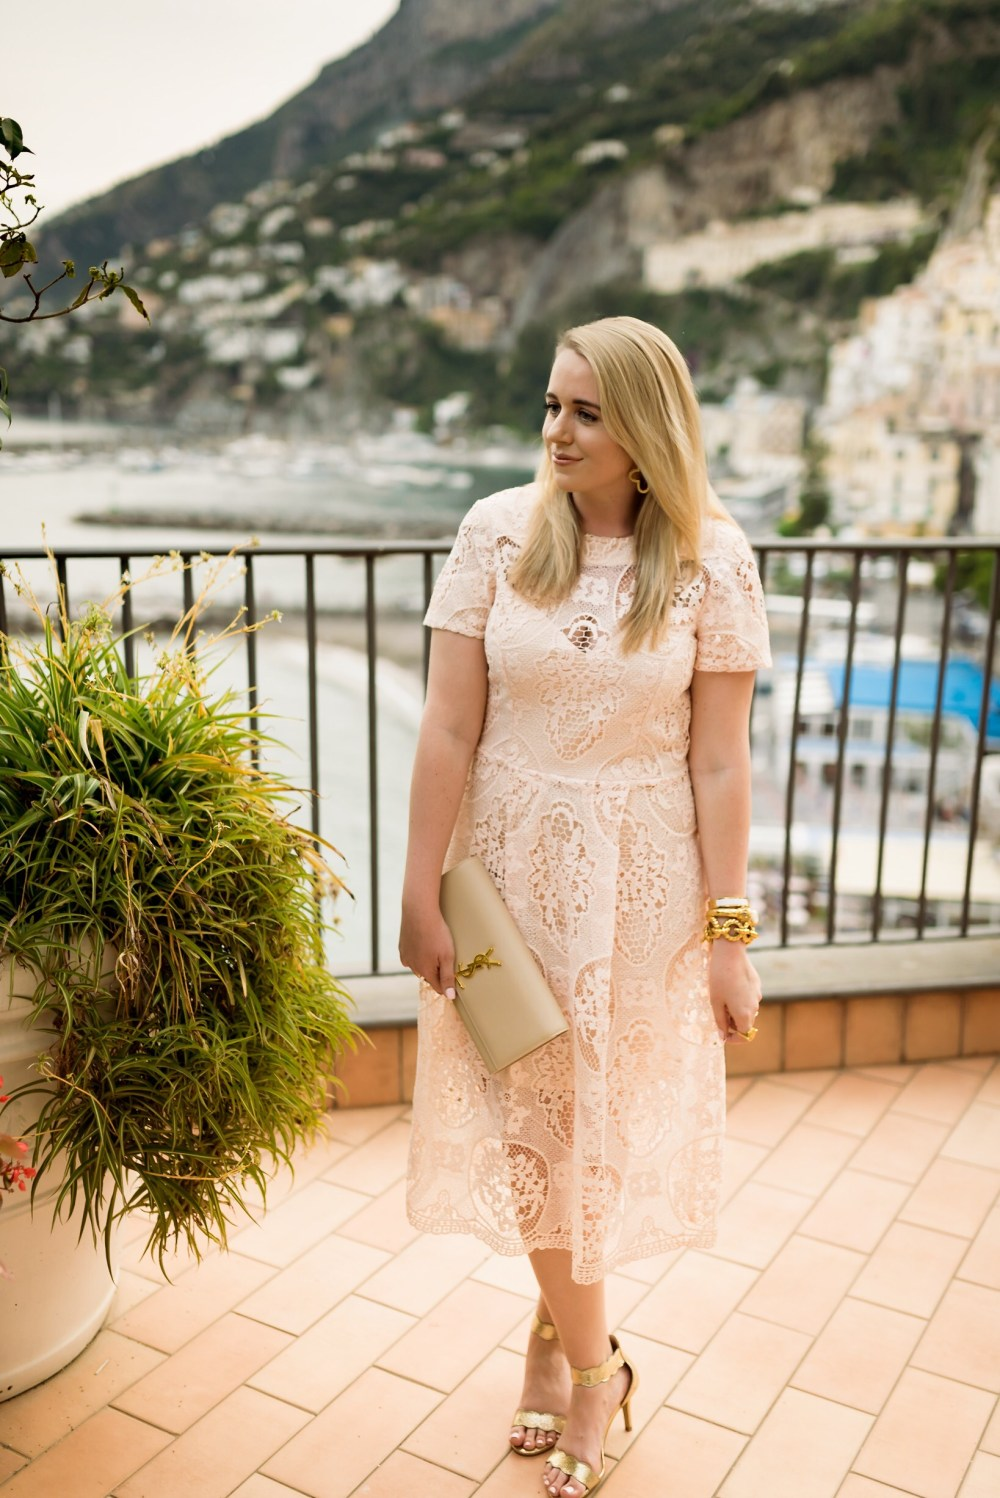 Fancy-Things-Lace-Midi-Dress-Amalfi-Amalfi-Coast-View